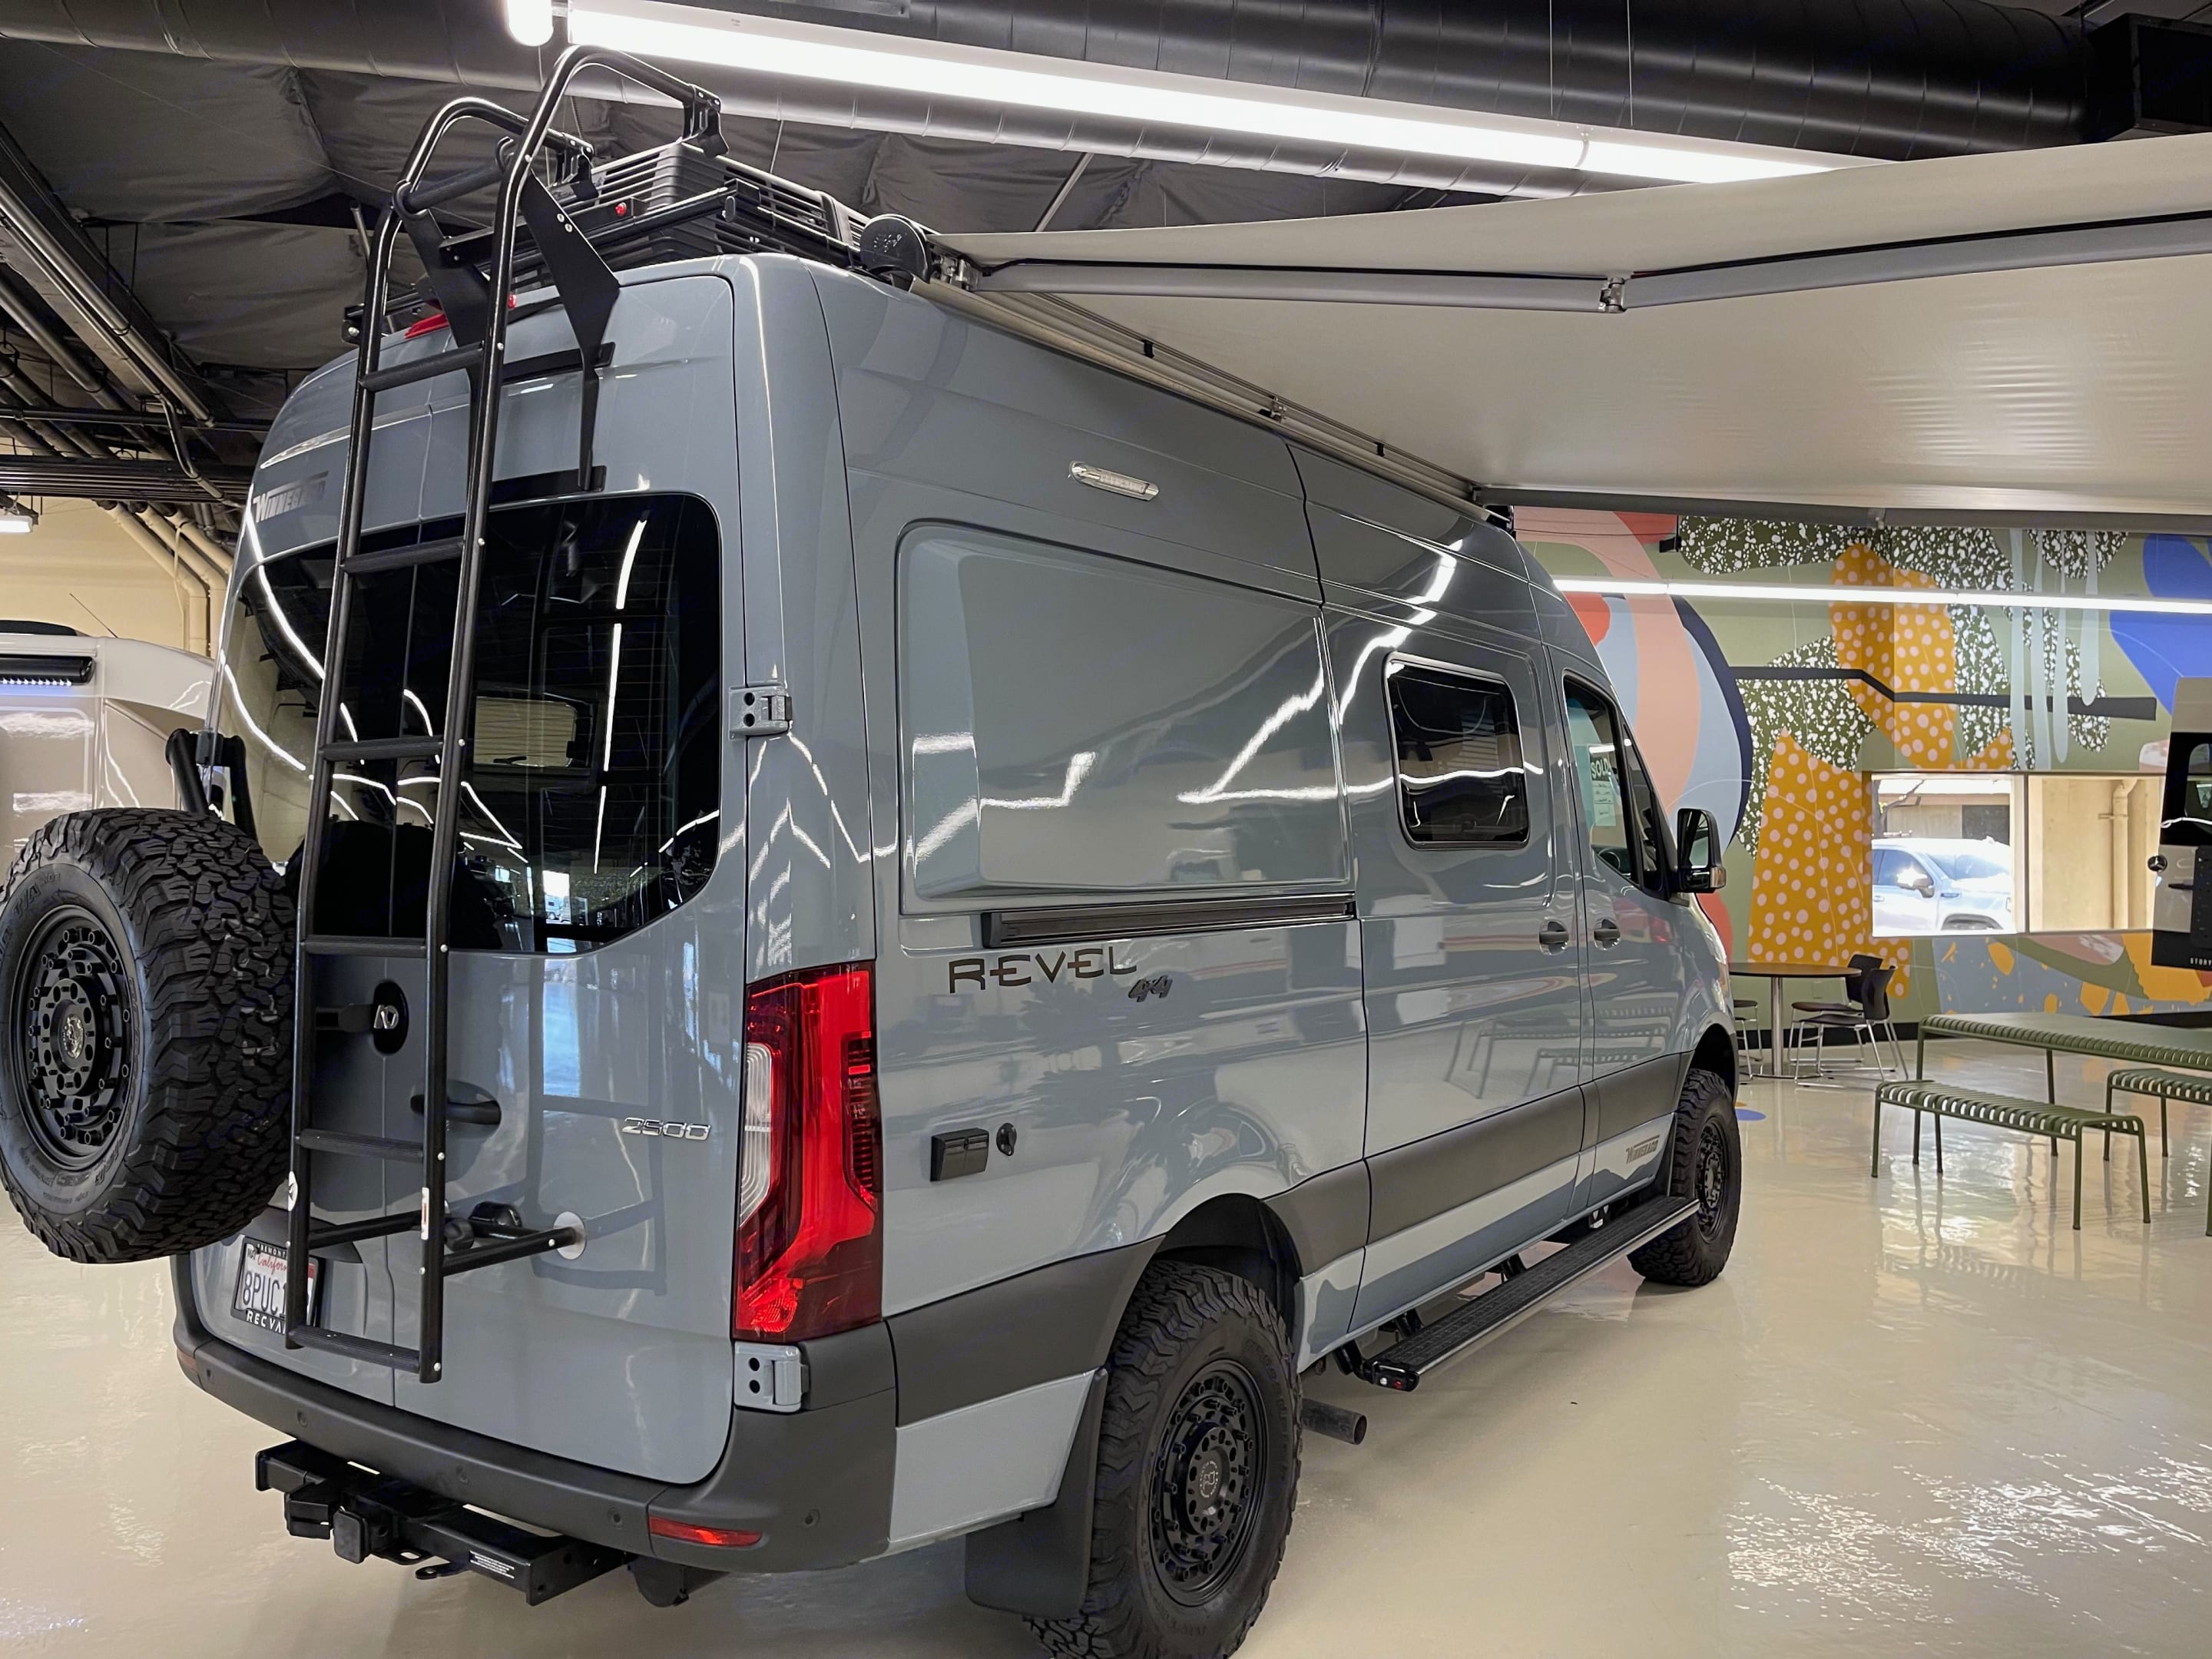 Here Is Our Revel Right Before We Drove It Off The Show Room Floor. Showing Ladder and Mounted Spare Tire.. Winnebago Mercedes 2020